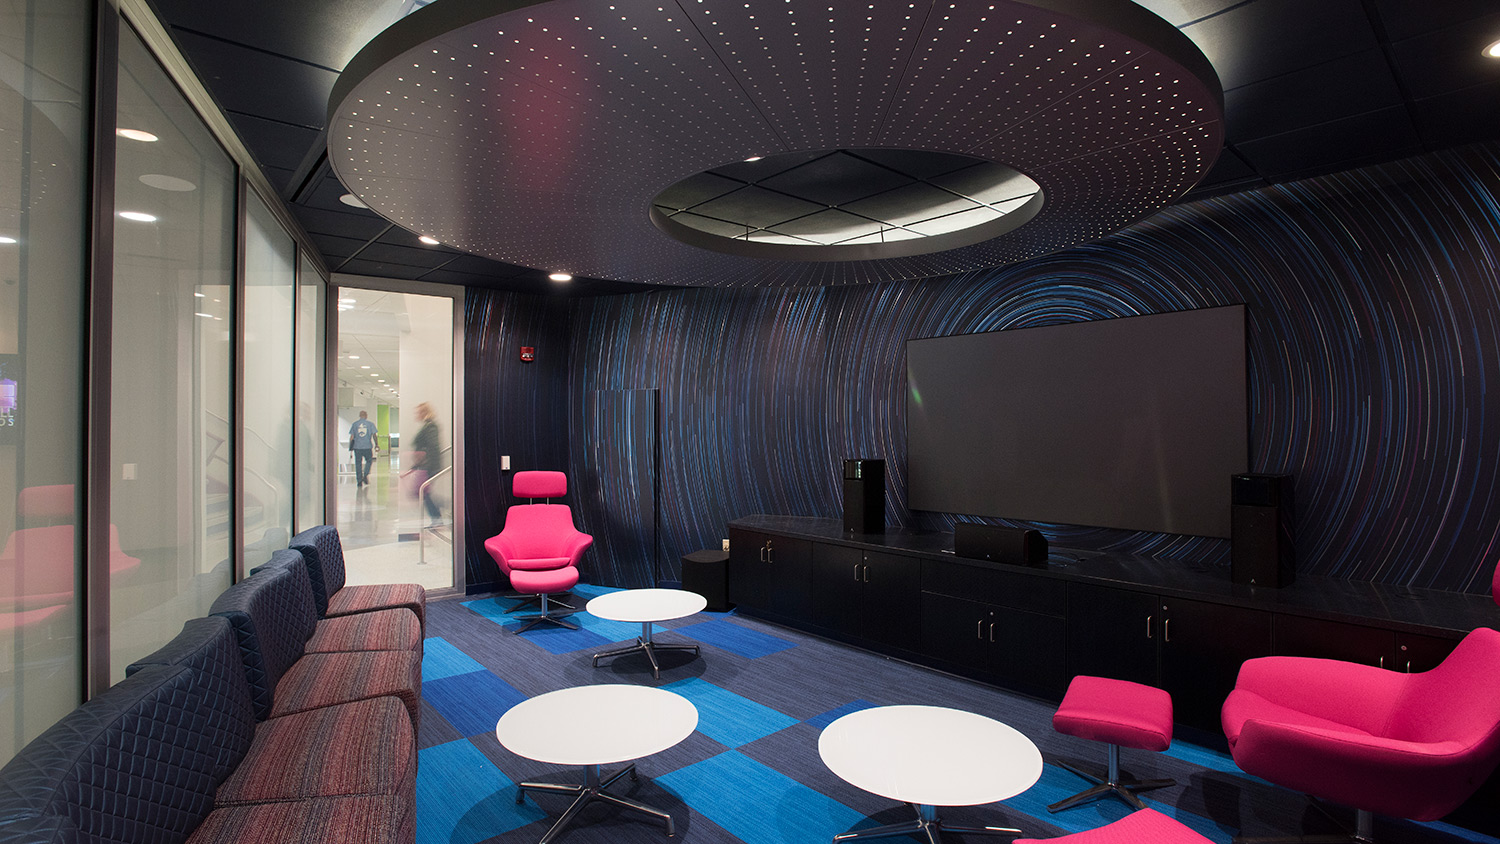 Dark room with white circular tables, hot pink chairs and large TV screen with speakers